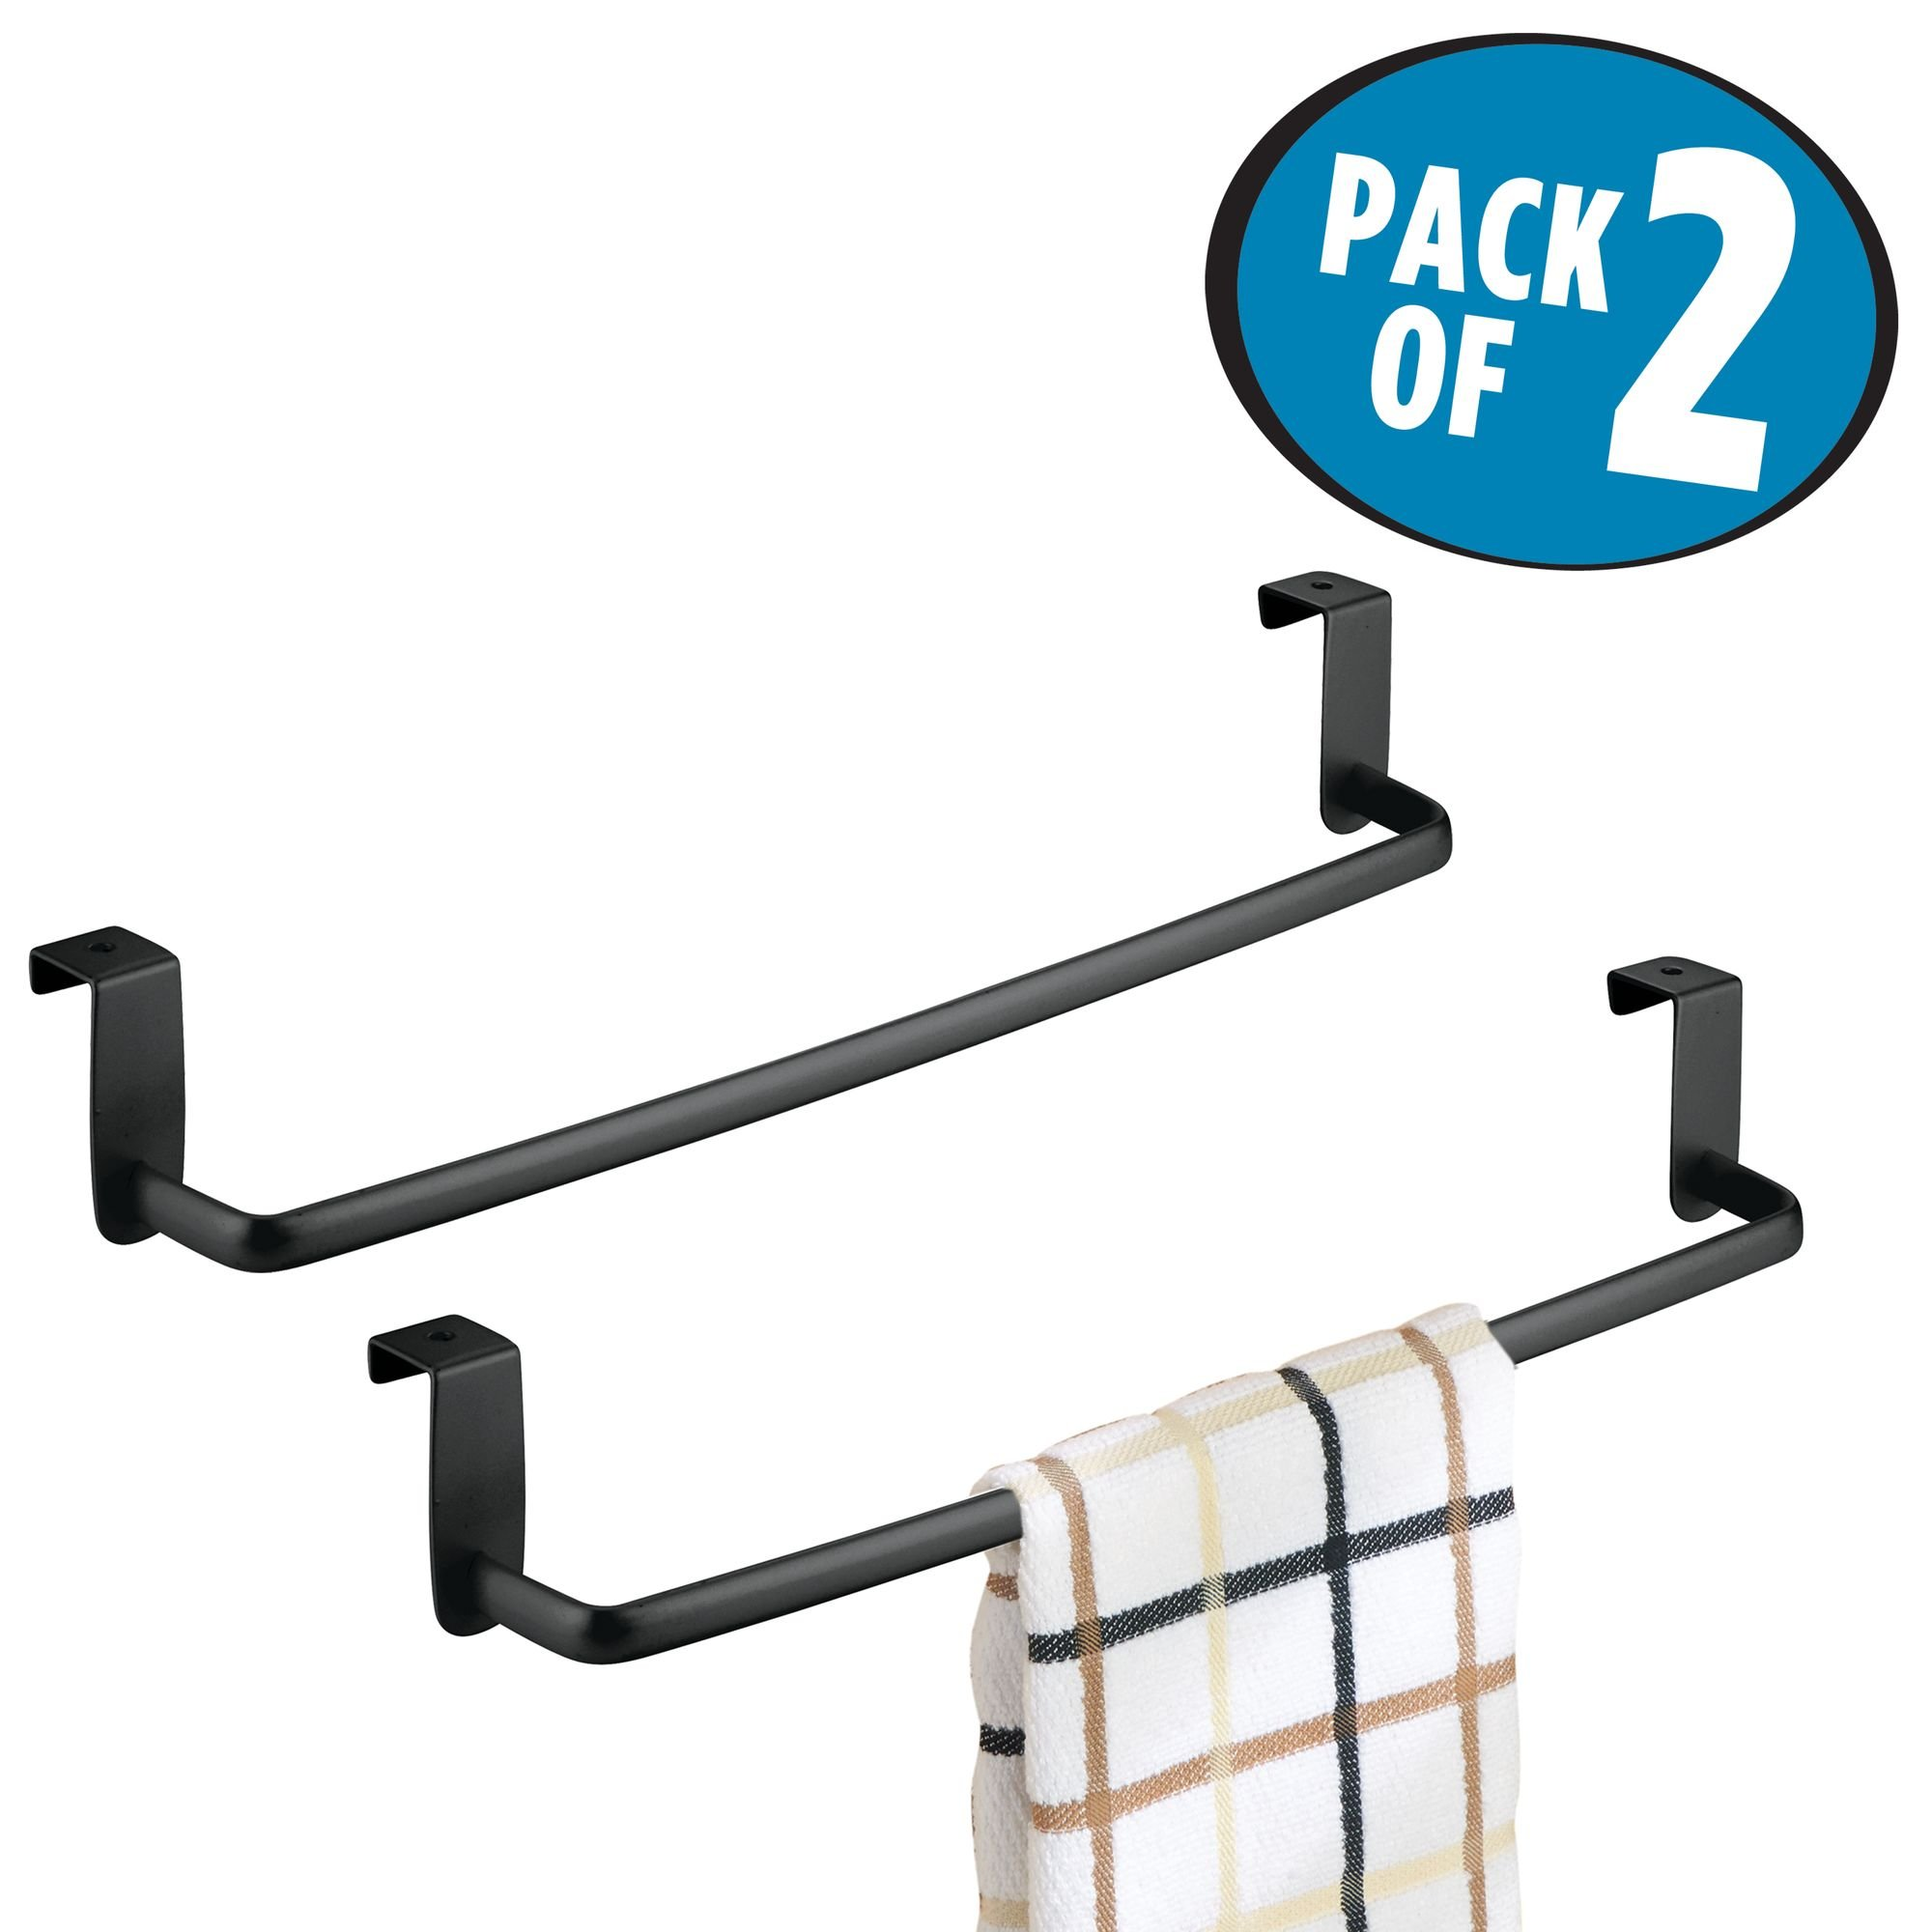 mDesign Kitchen Storage Over Cabinet Curved Steel Towel Bar - Hang on Inside or Outside of Doors, for Organizing and Hanging Hand, Dish, and Tea Towels - 14'' Wide, Pack of 2, Matte Black Finish by mDesign